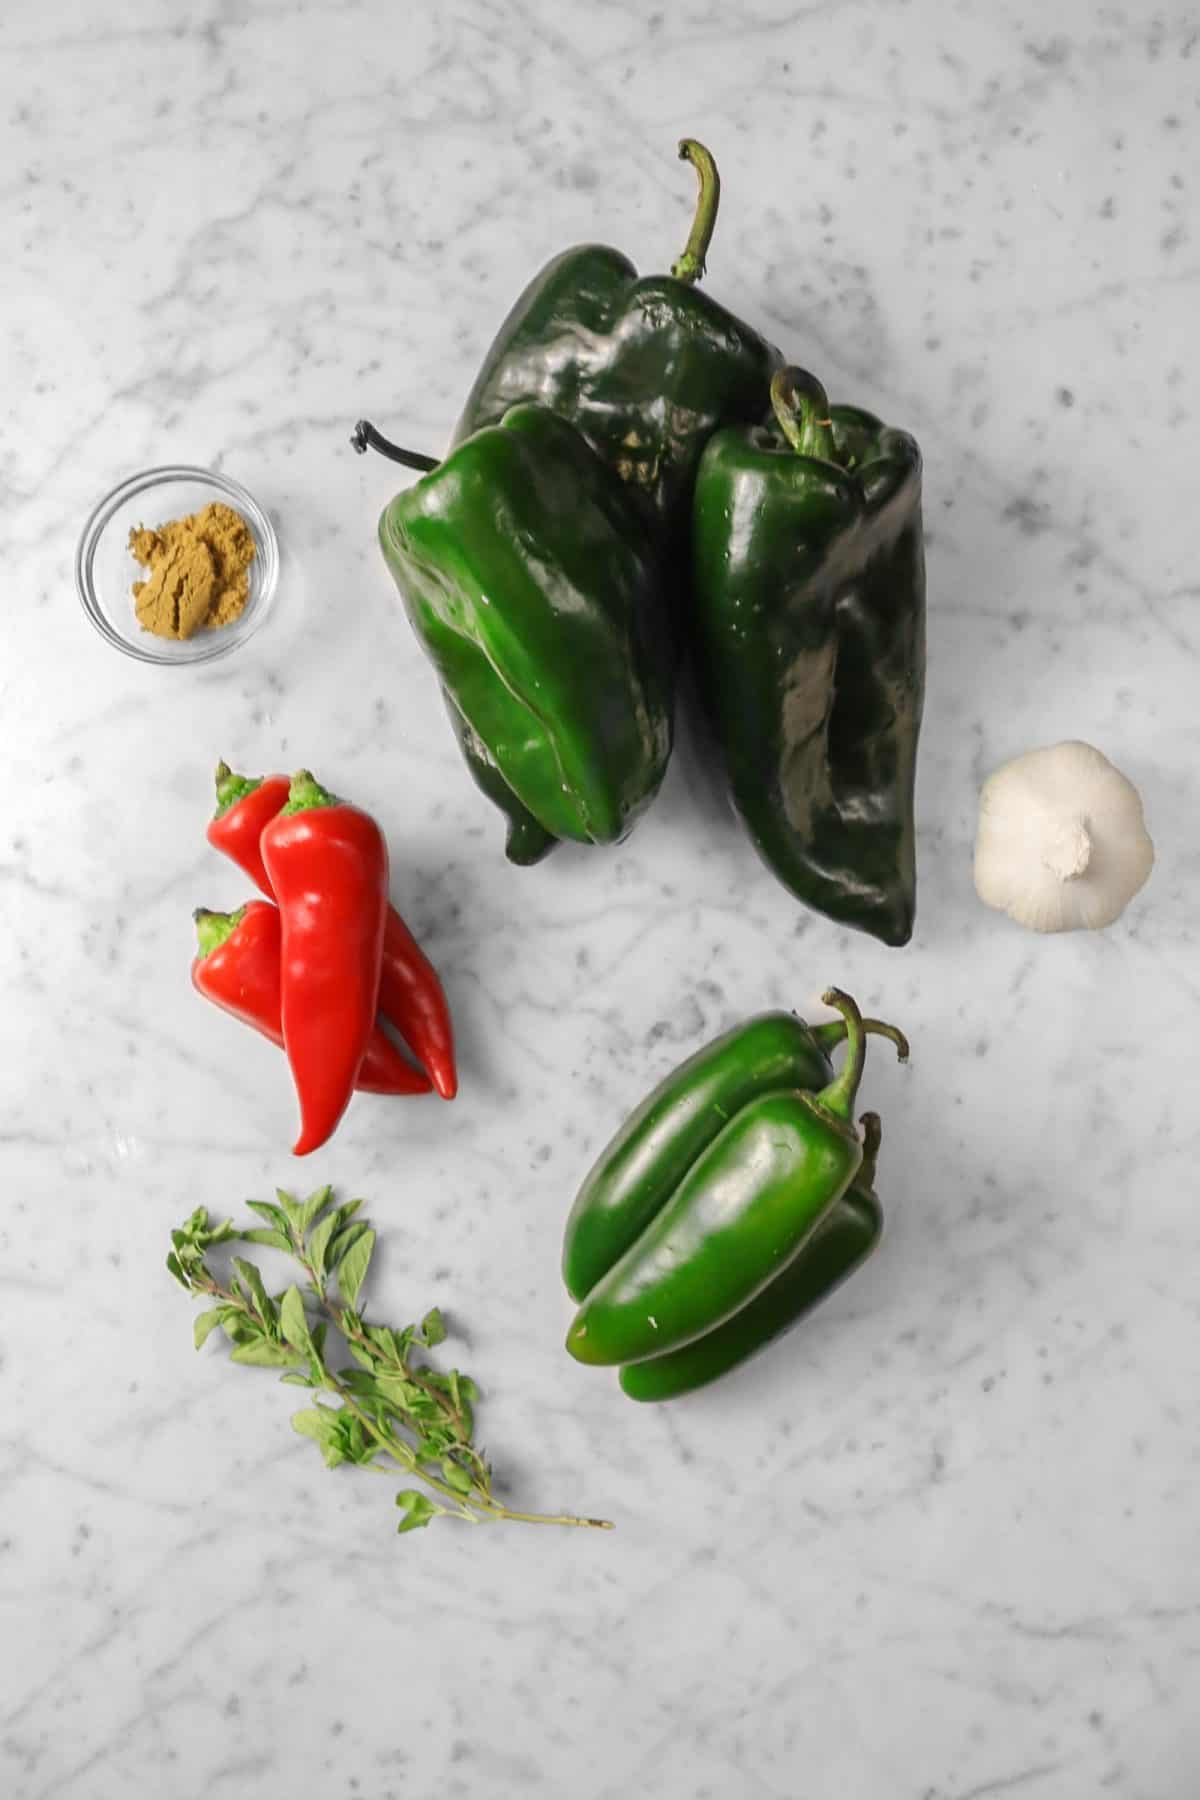 pablano chili's, jalapeno's, and red chili's on a marble board with cumin, oregano, and a head of garlic